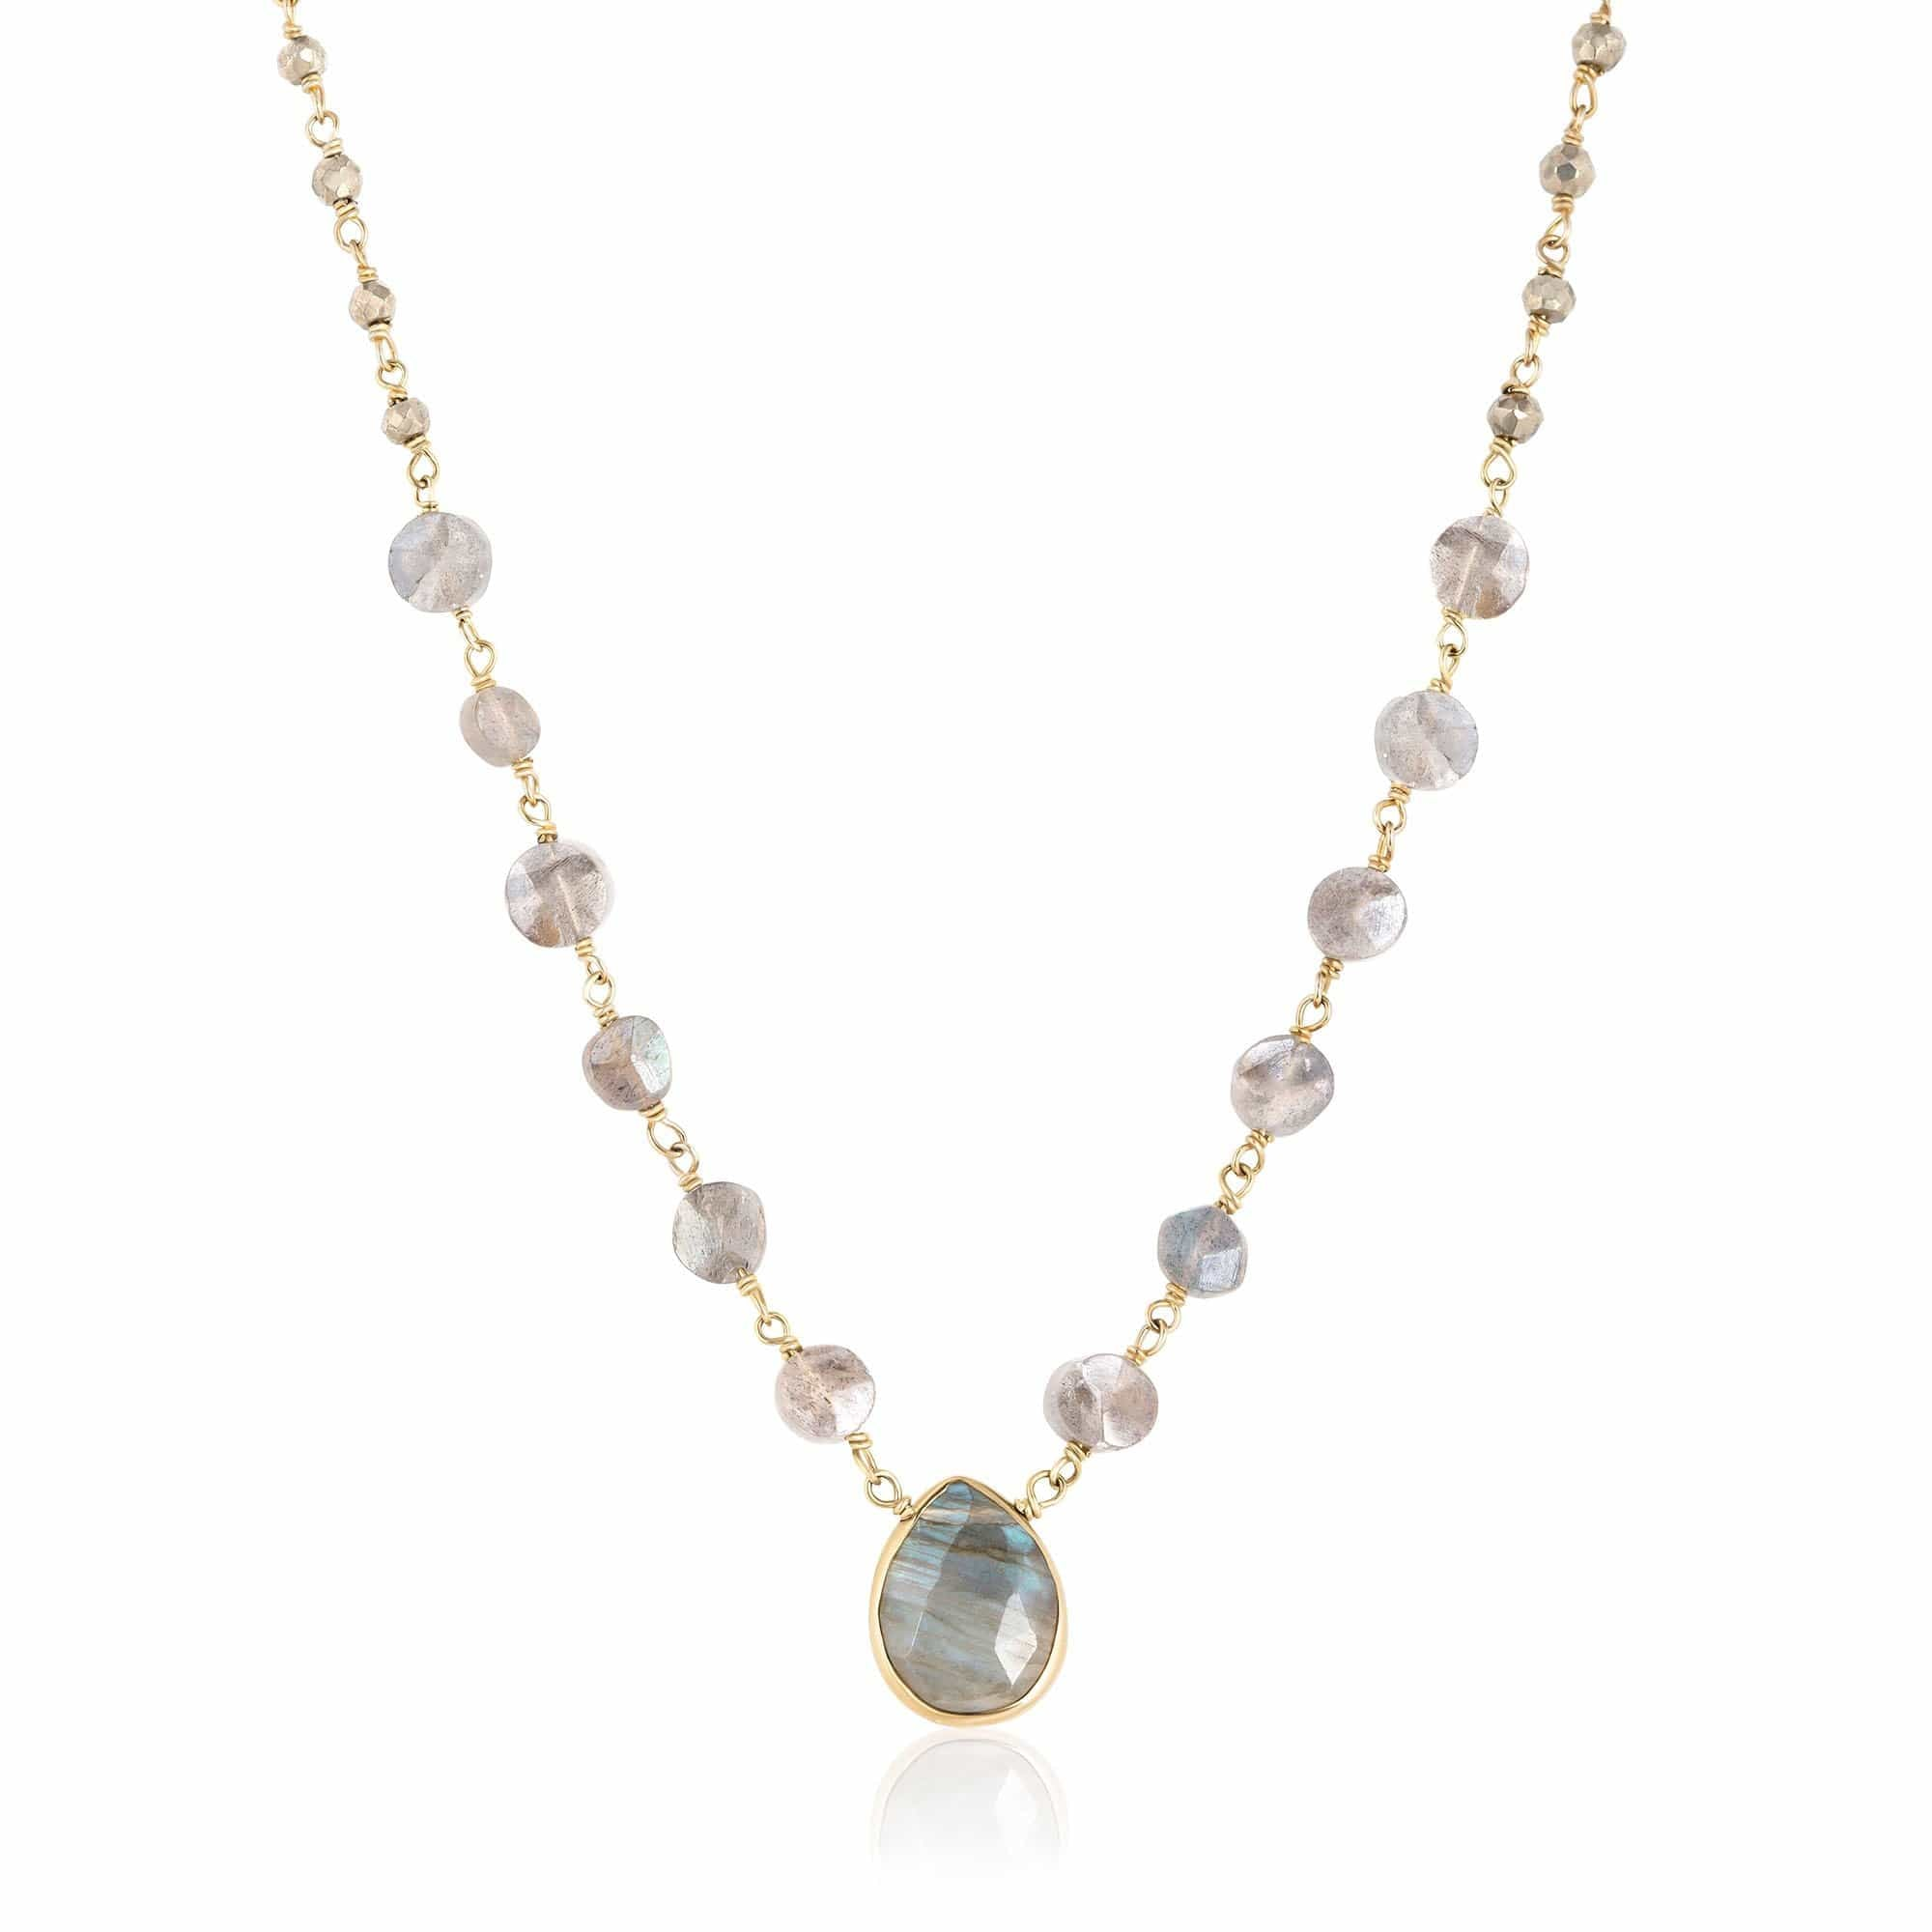 ela rae ara pendant necklace labradorite pyrite 14k yellow gold plate